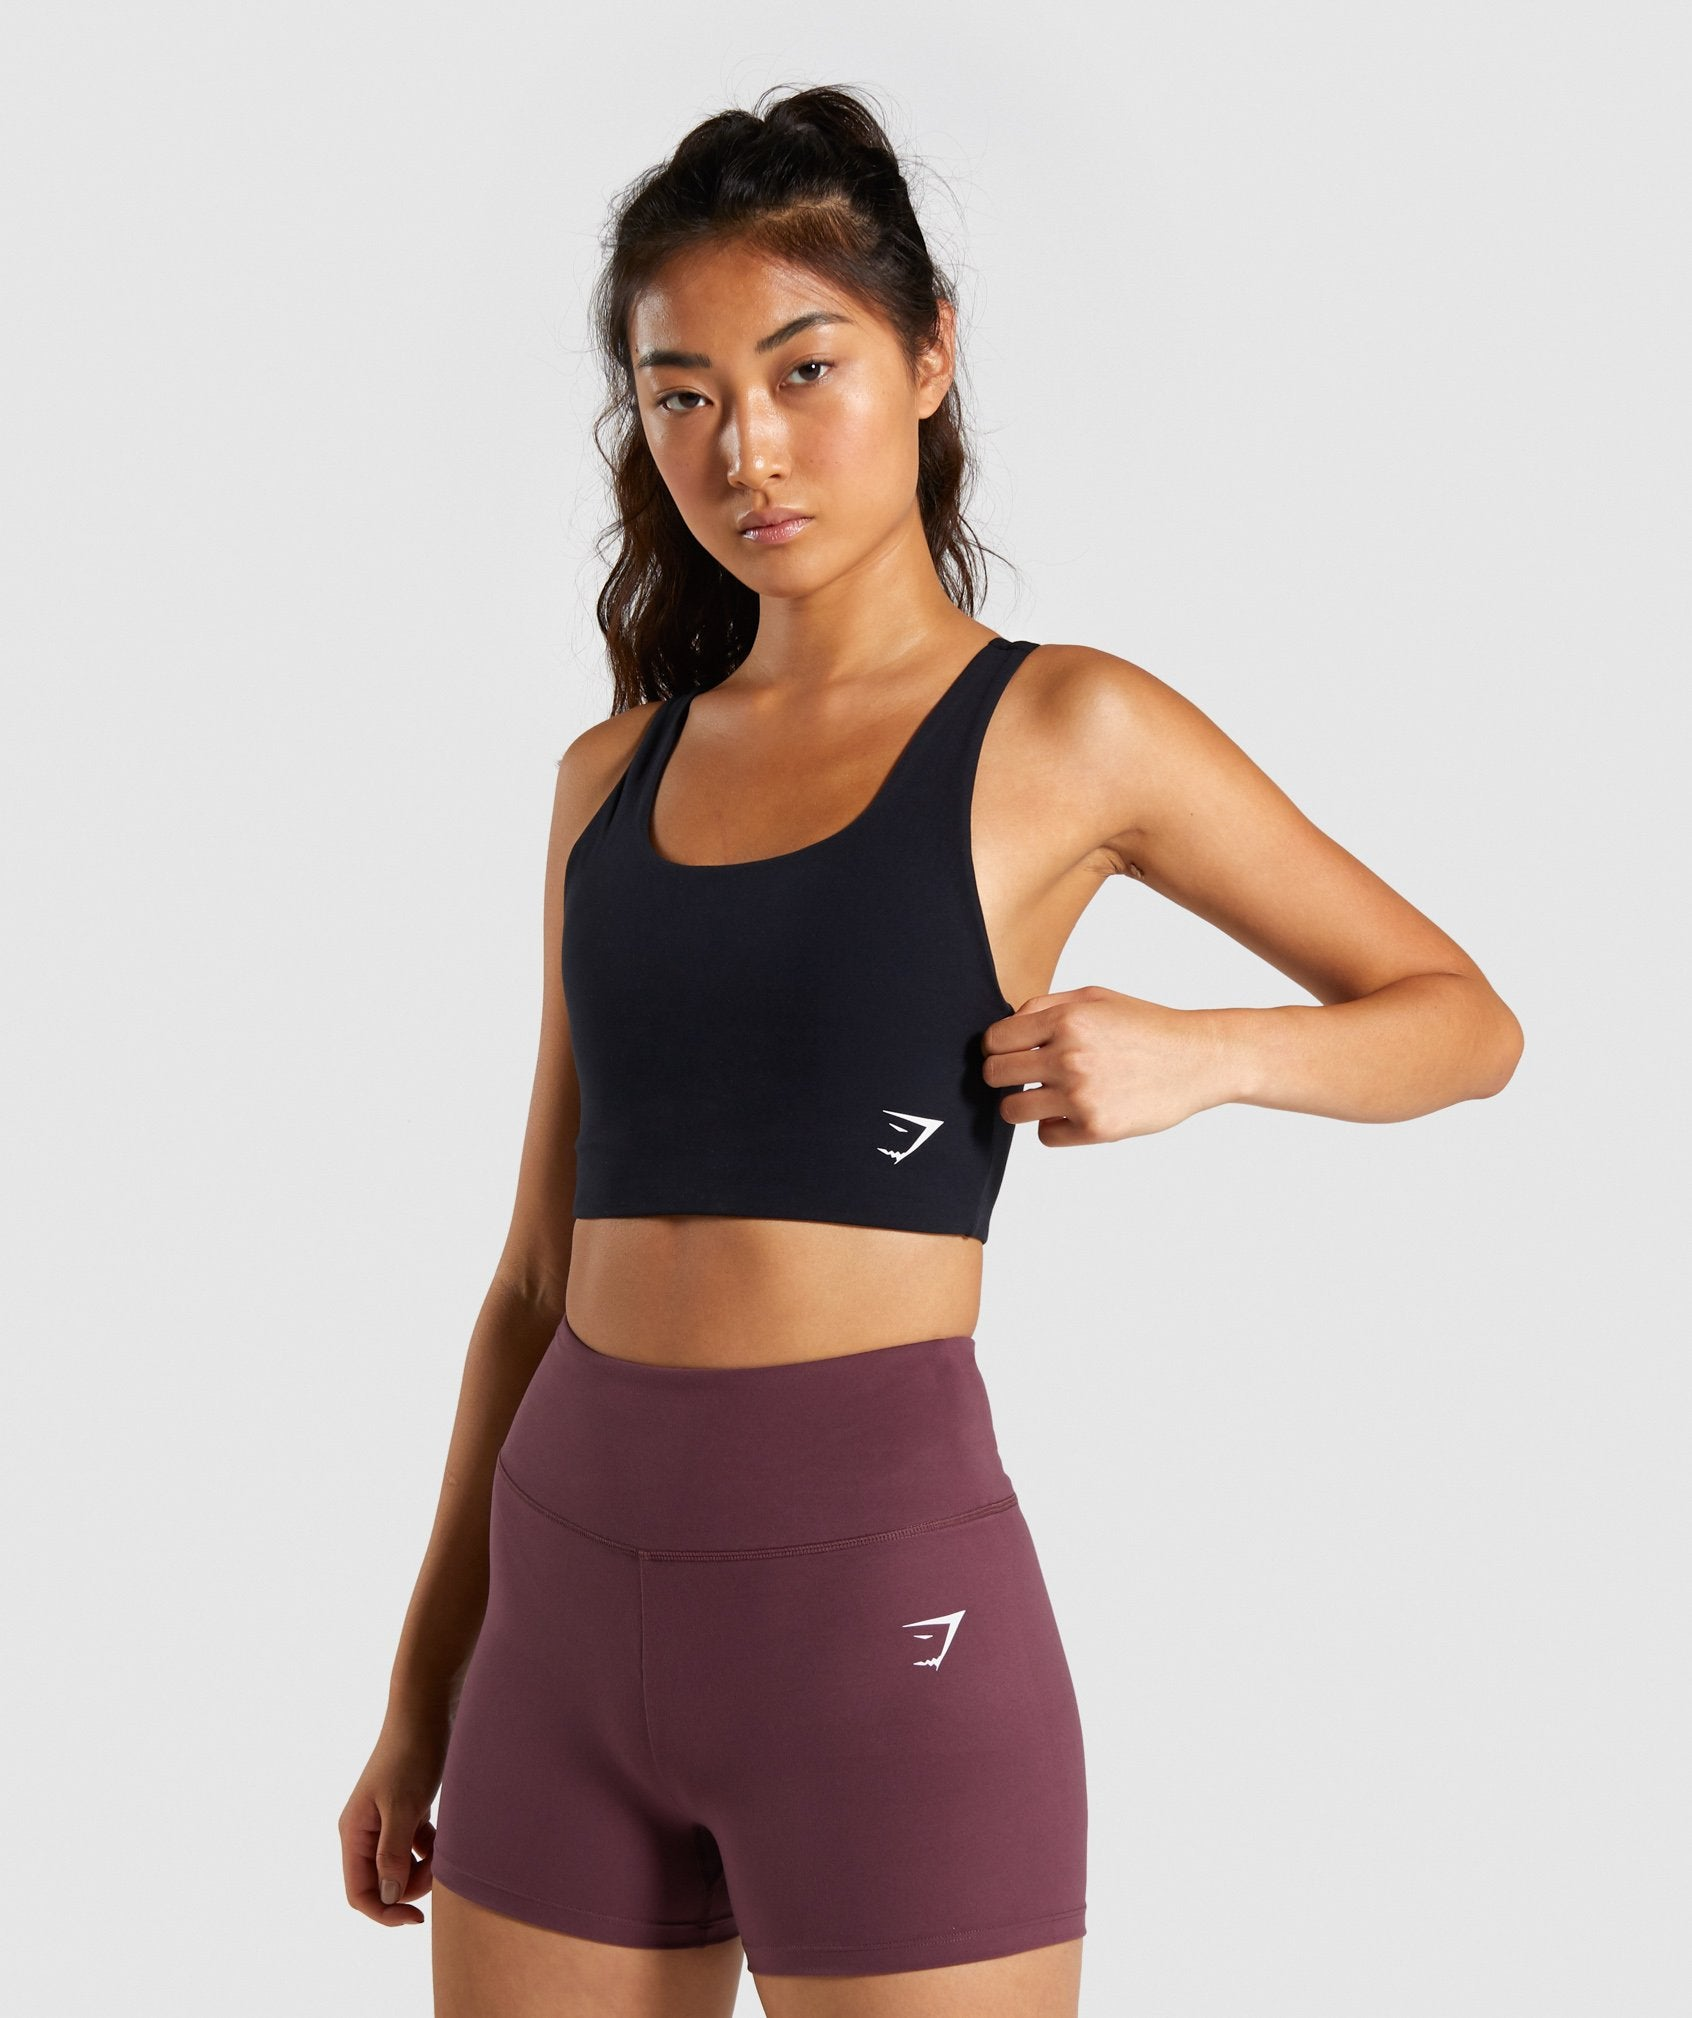 Classier: Buy Gymshark Dreamy Sports Bra - Black/White - Gymshark